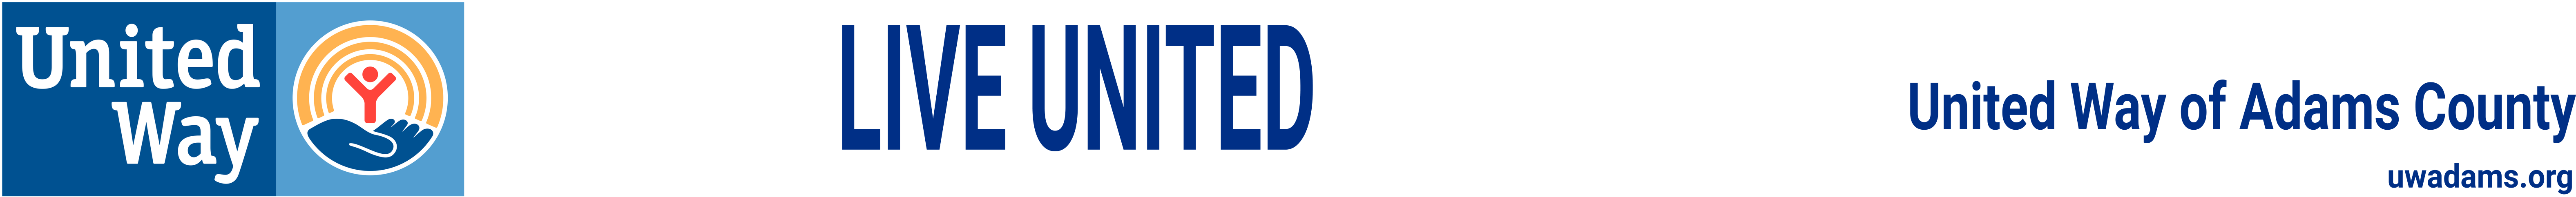 United Way of Adams County Logo